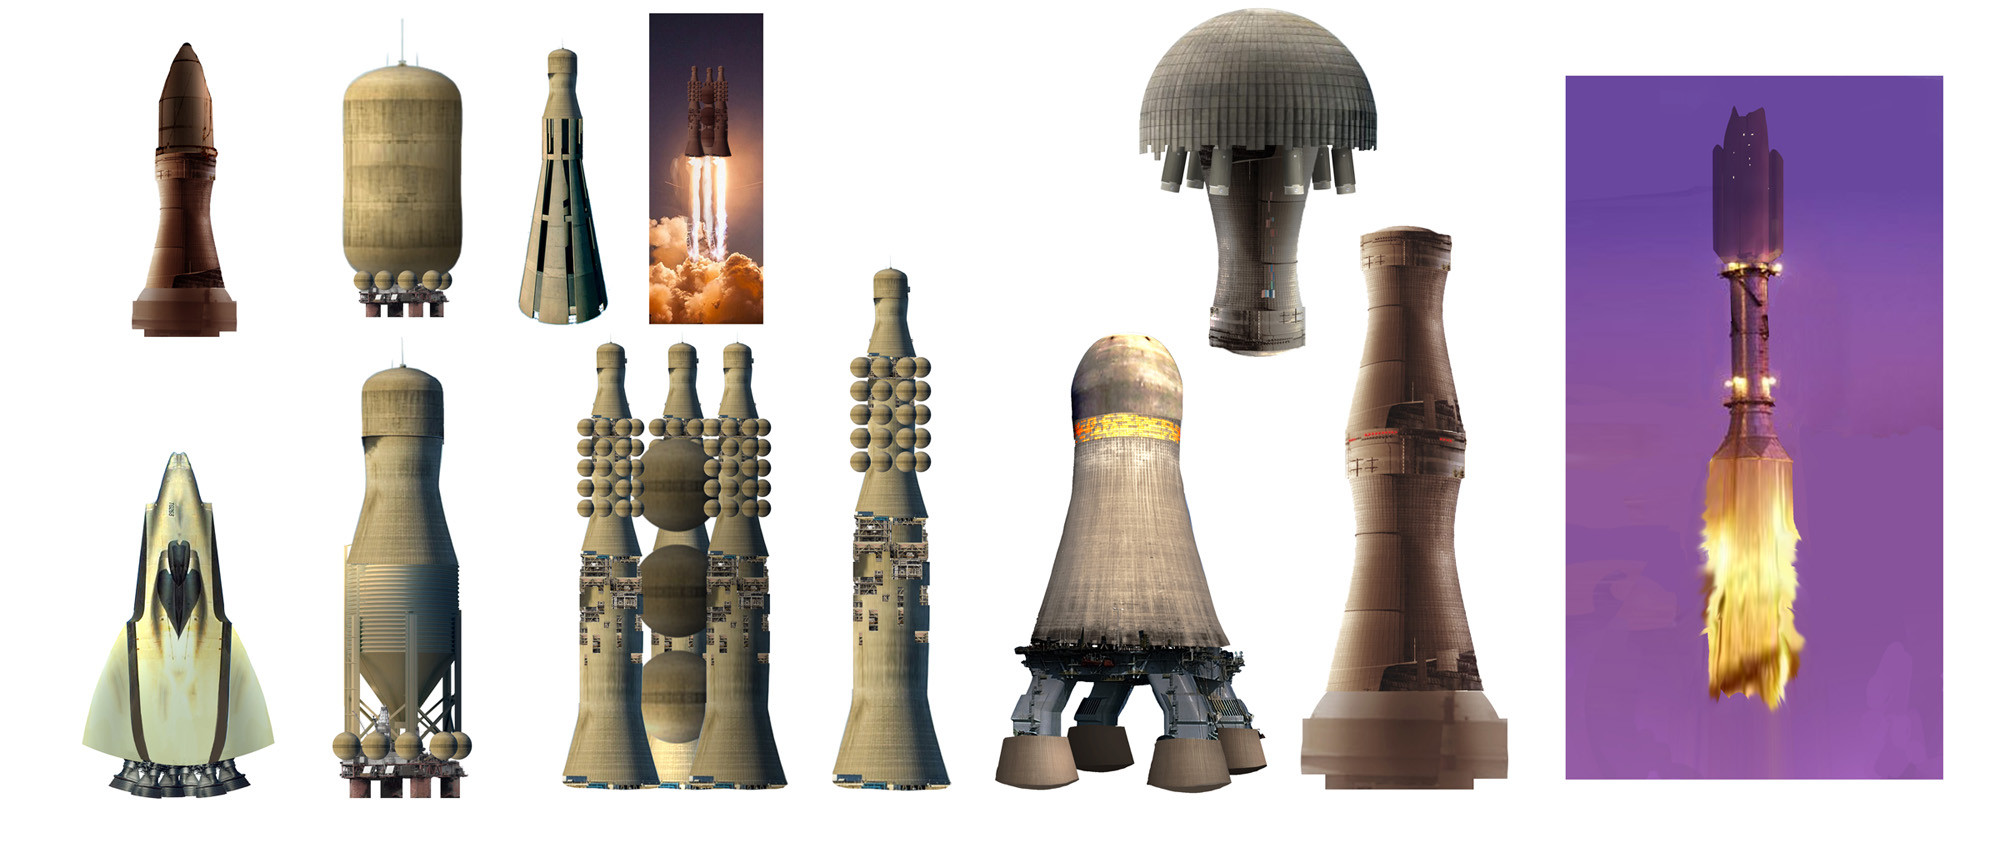 I also made concepts for the rocket. The idea was to use elements of nuclear power plants.